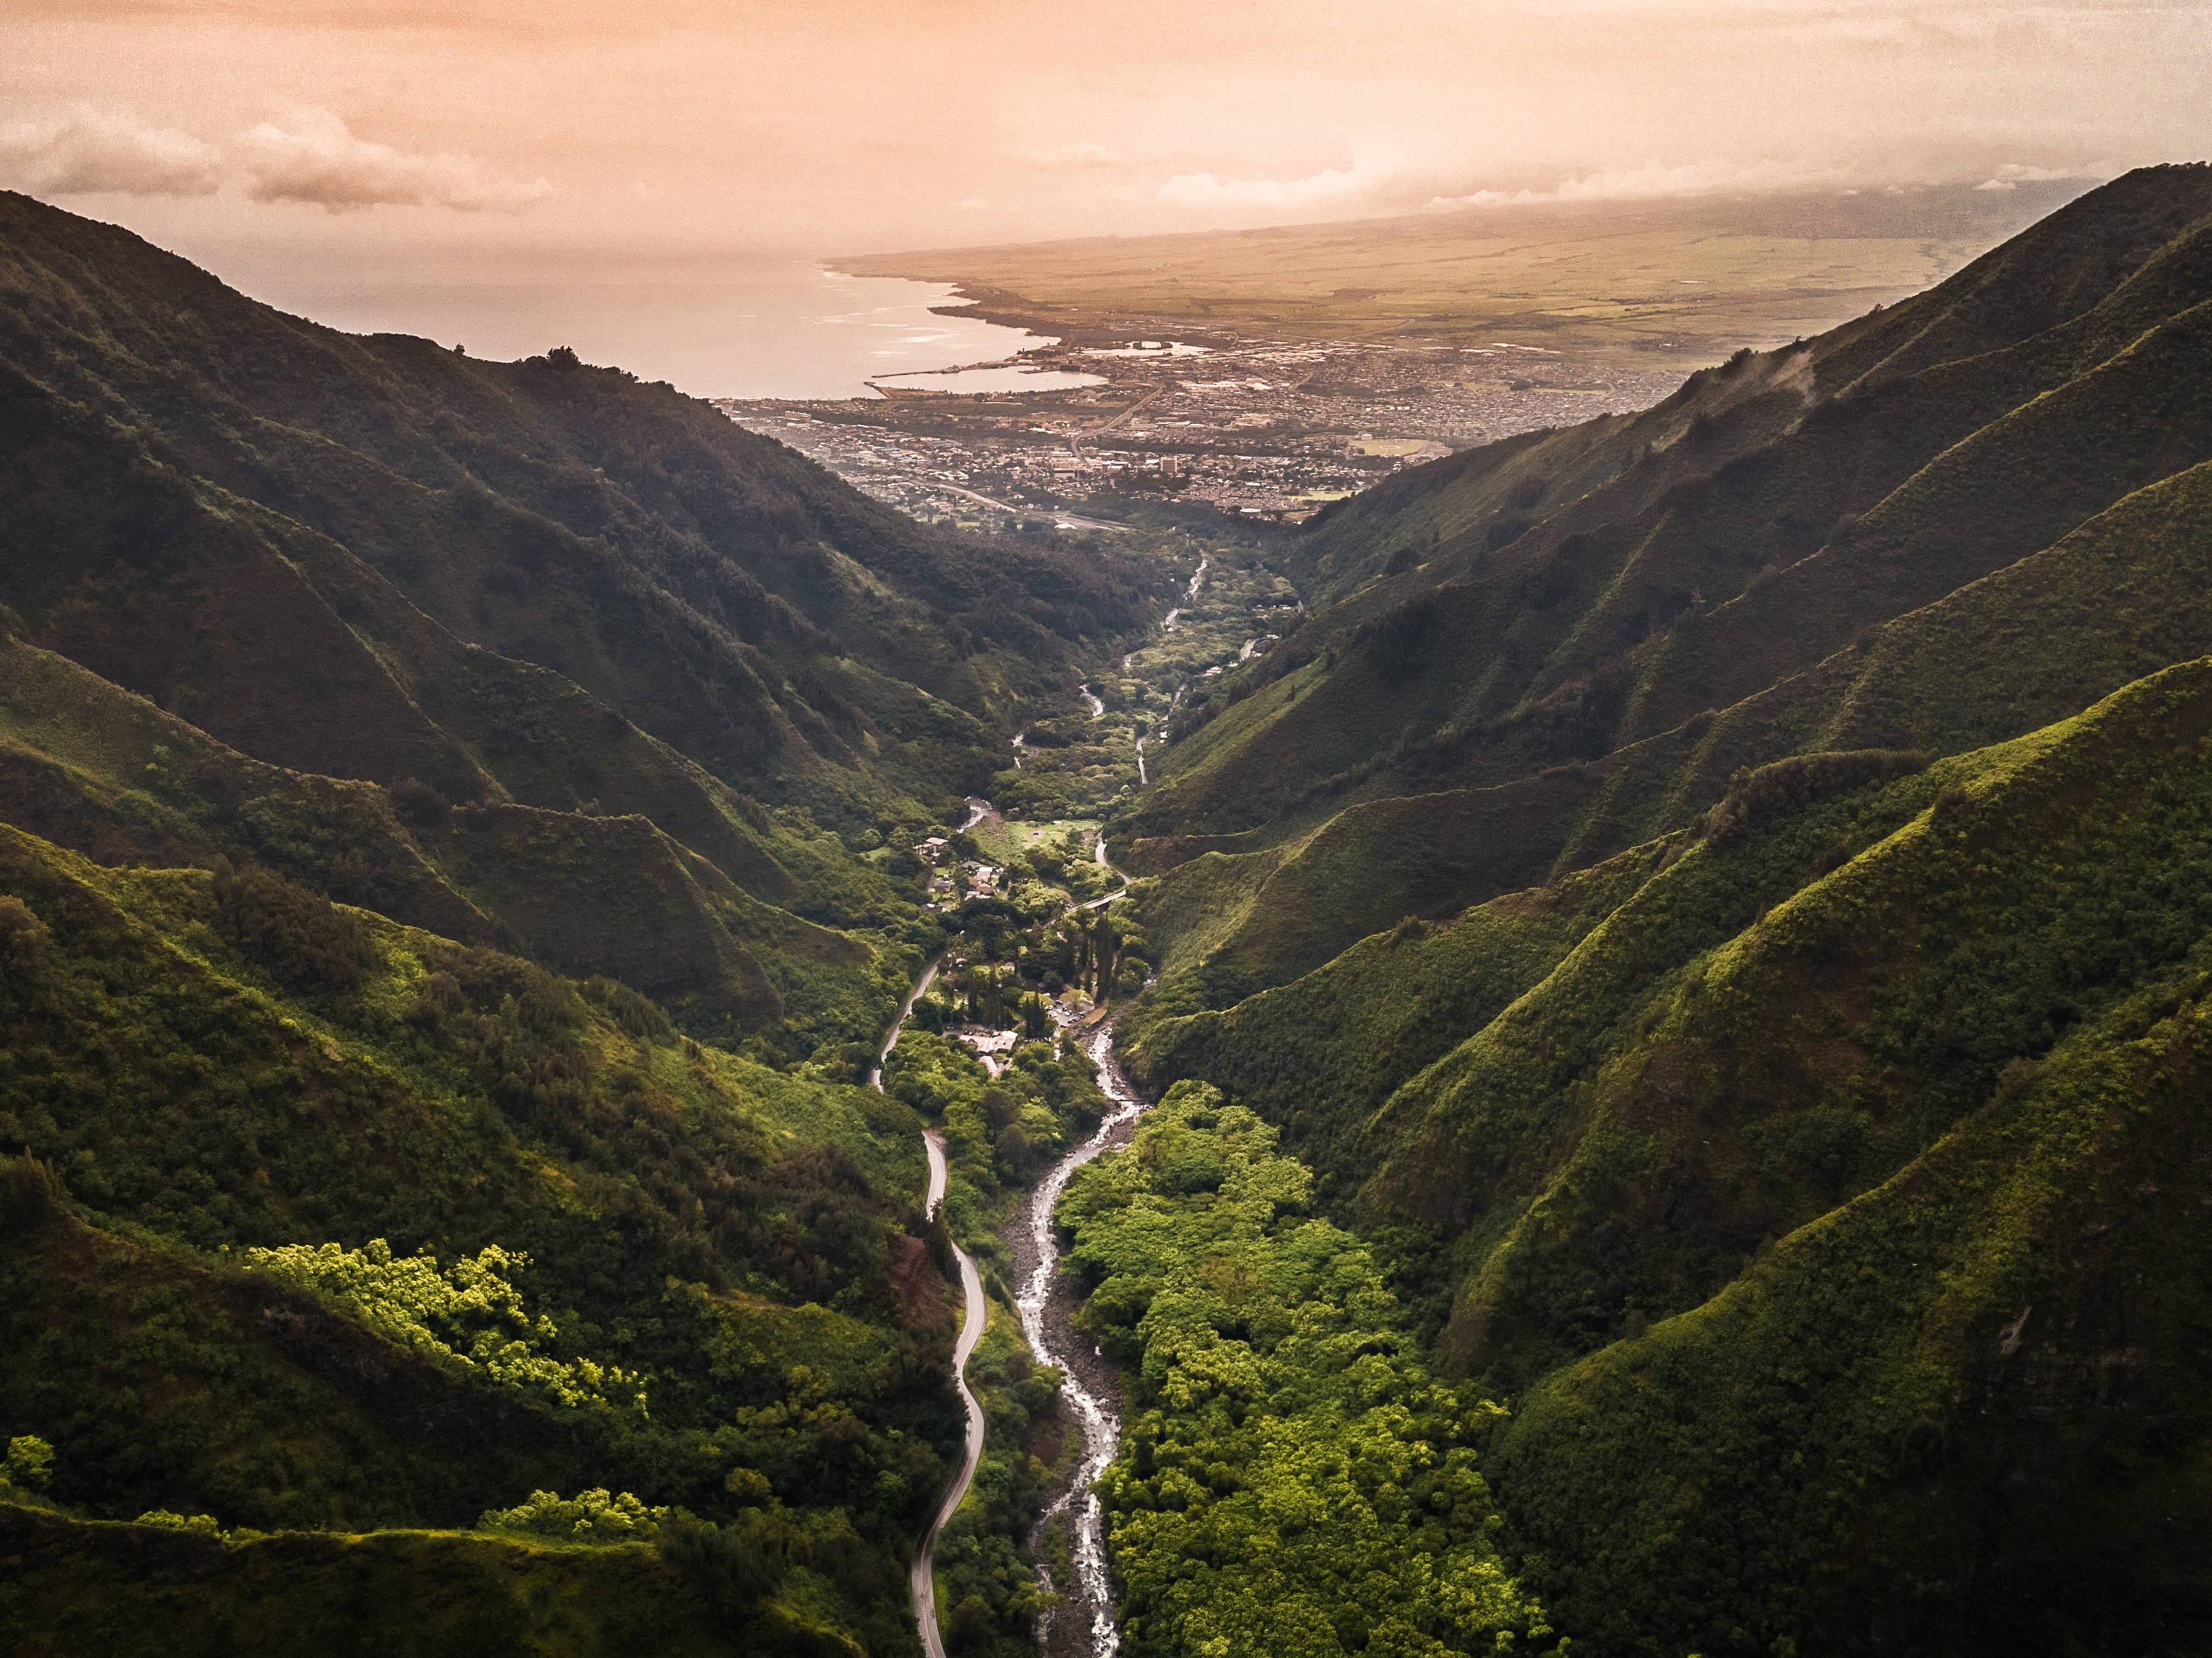 Things to Do in Maui: More Than Just Beaches. View of stream in Maui which runs beside road in valley between two lush, green mountains on either side, leading to a city and bay below.